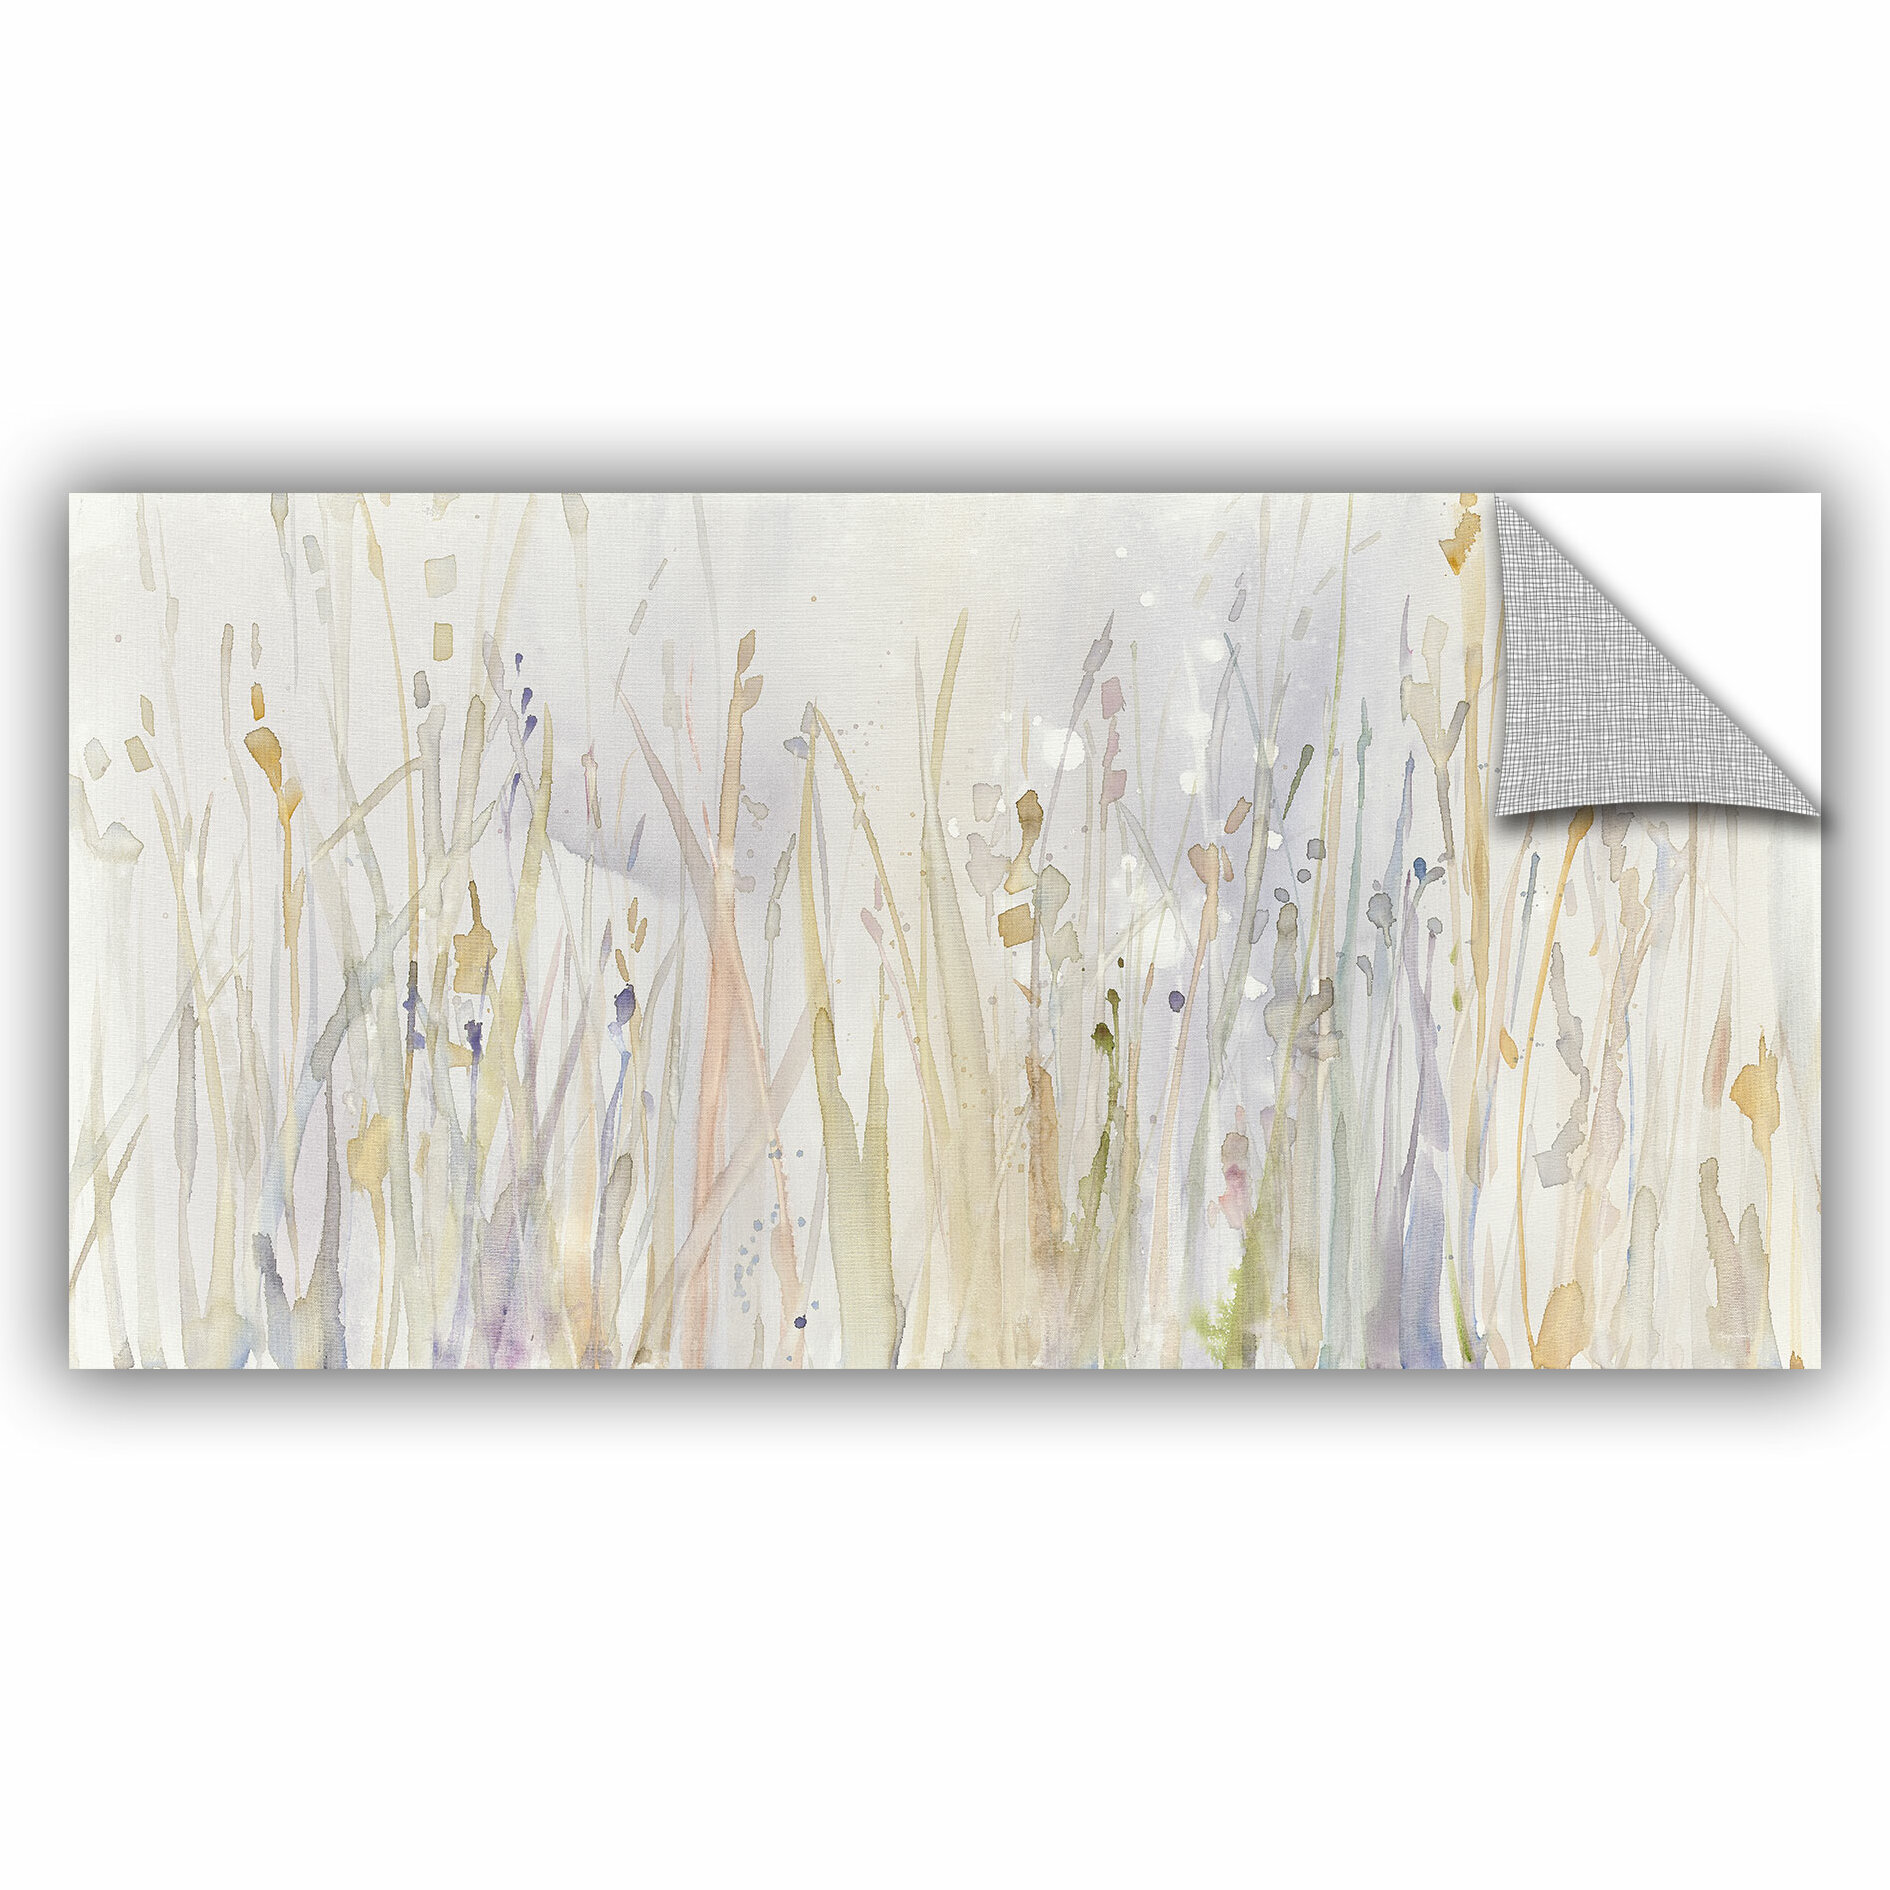 Artwall Avery Tillmon Autumn Grass Wall Decal Wayfair